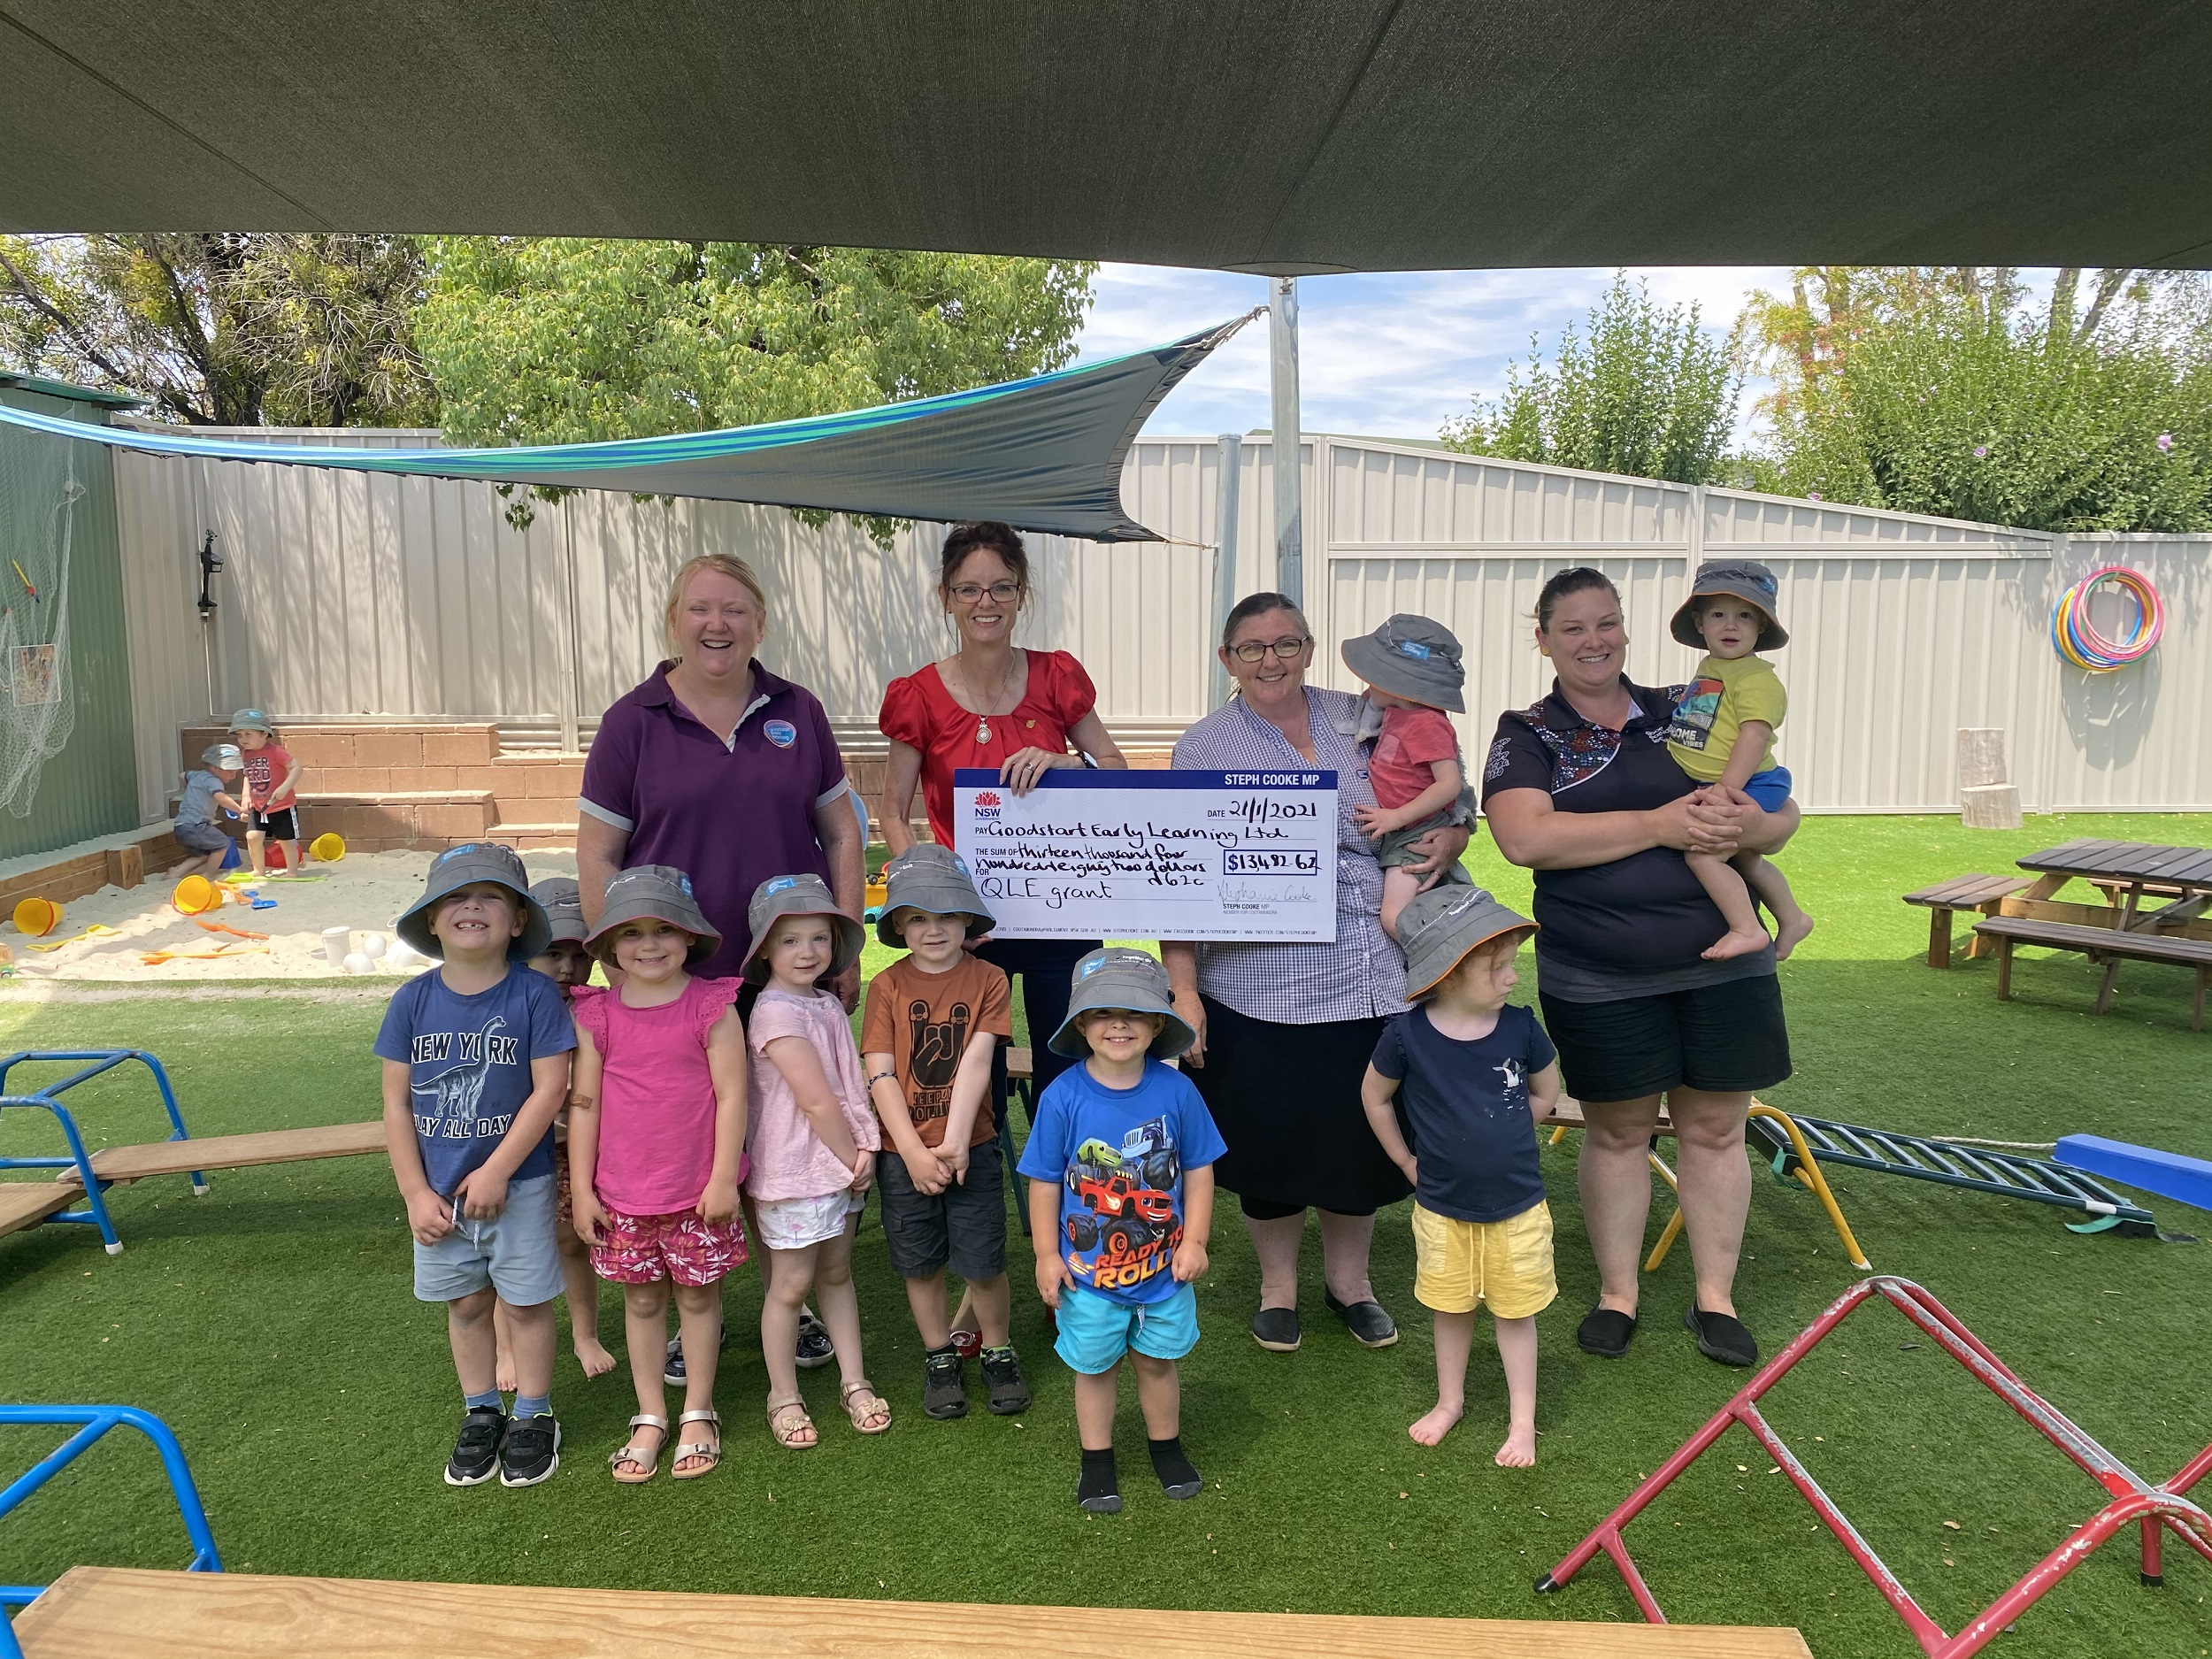 Steph Cooke and Elizabeth Robbie hold a large cheque between them and stand surrounded by staff and students at the early learning centre outdoor area. They are surrounded by play equipment.